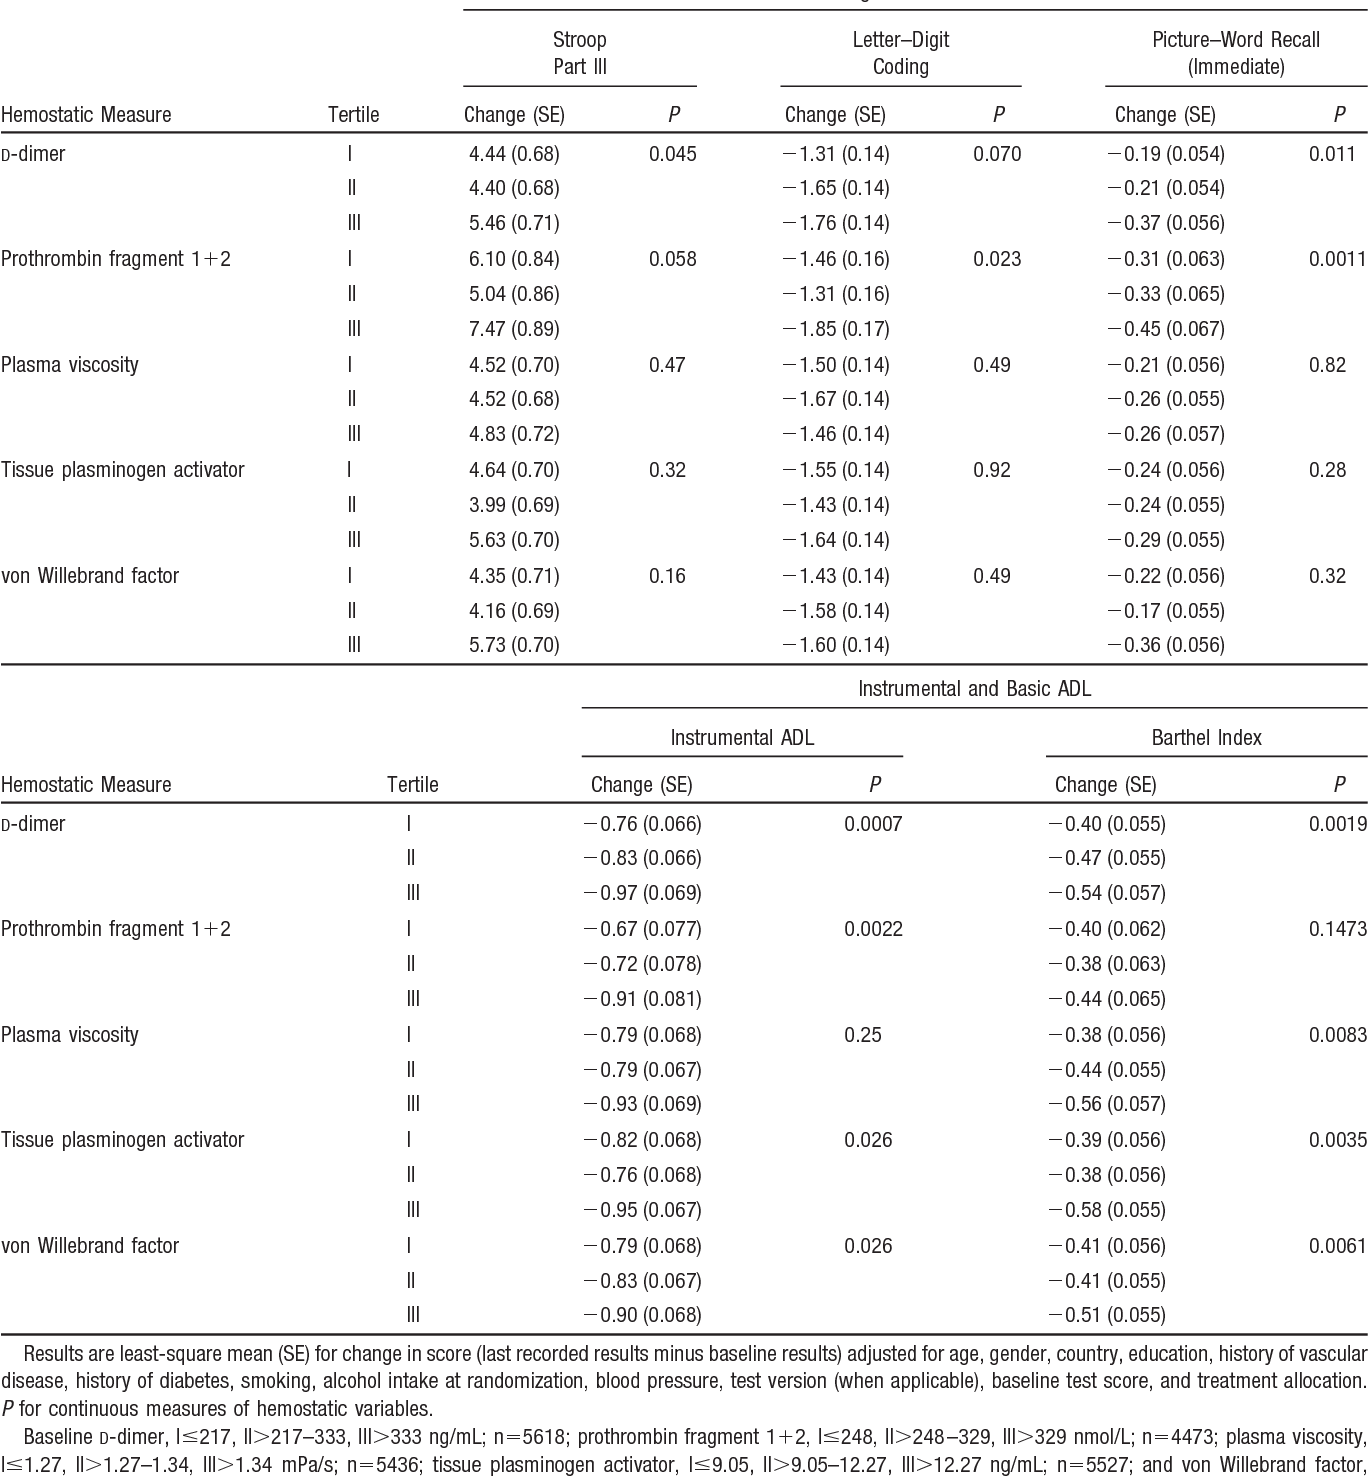 Table 3. Change in Cognition and ADL With Mean Follow-Up of 3.2 Years by Tertiles of Hemostatic Measures